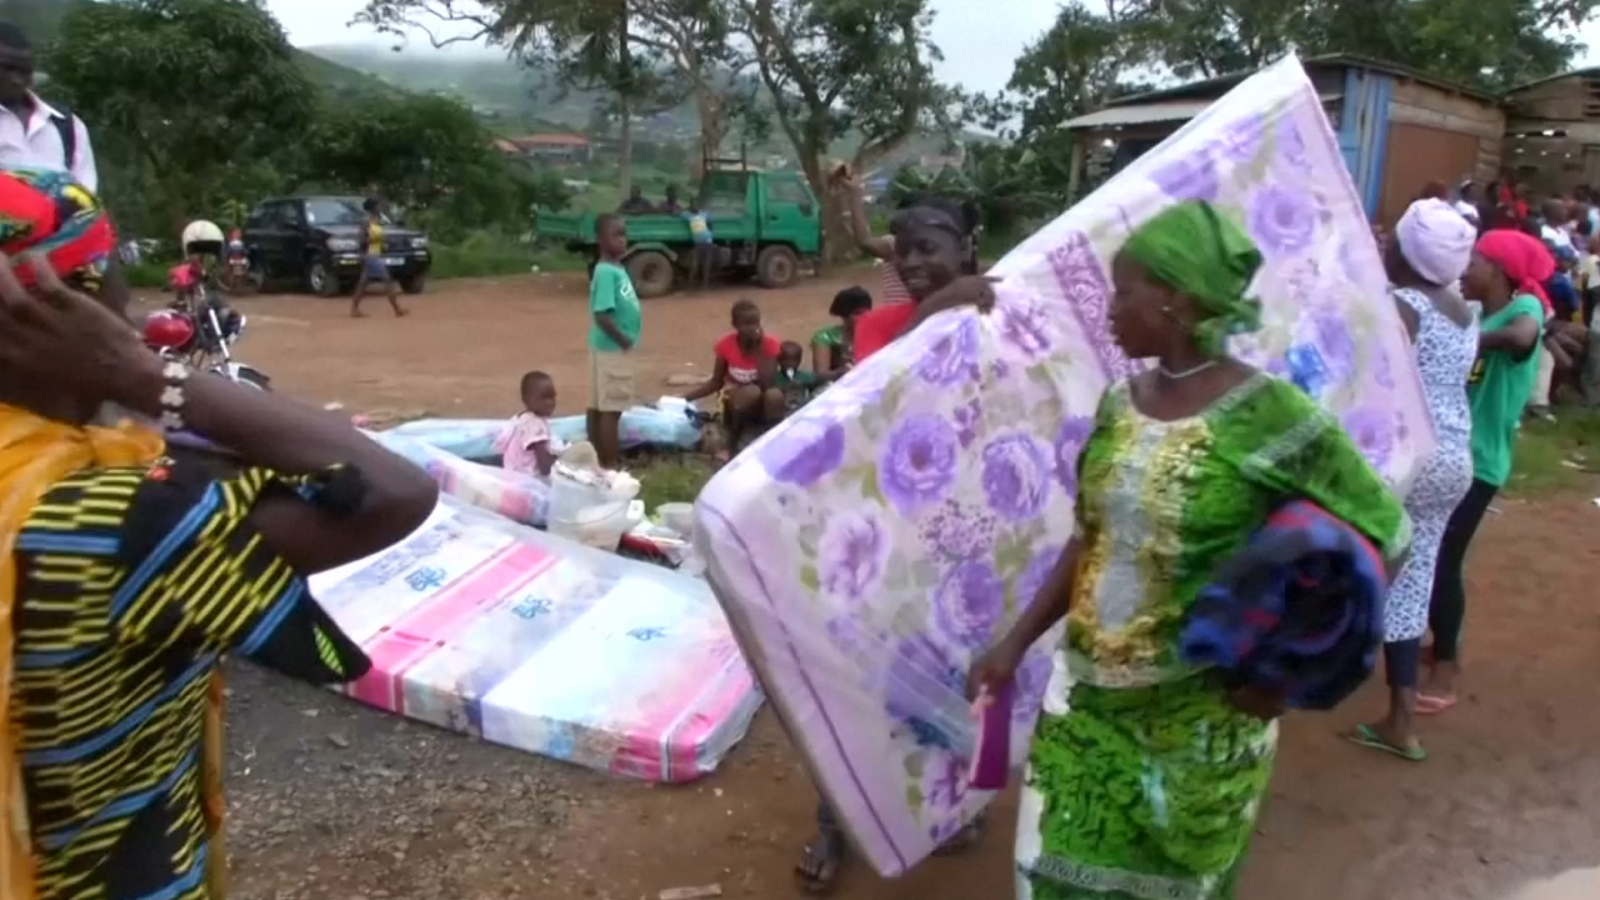 Sierra Leone mudslide: Residents evacuate in fear of second mudslide